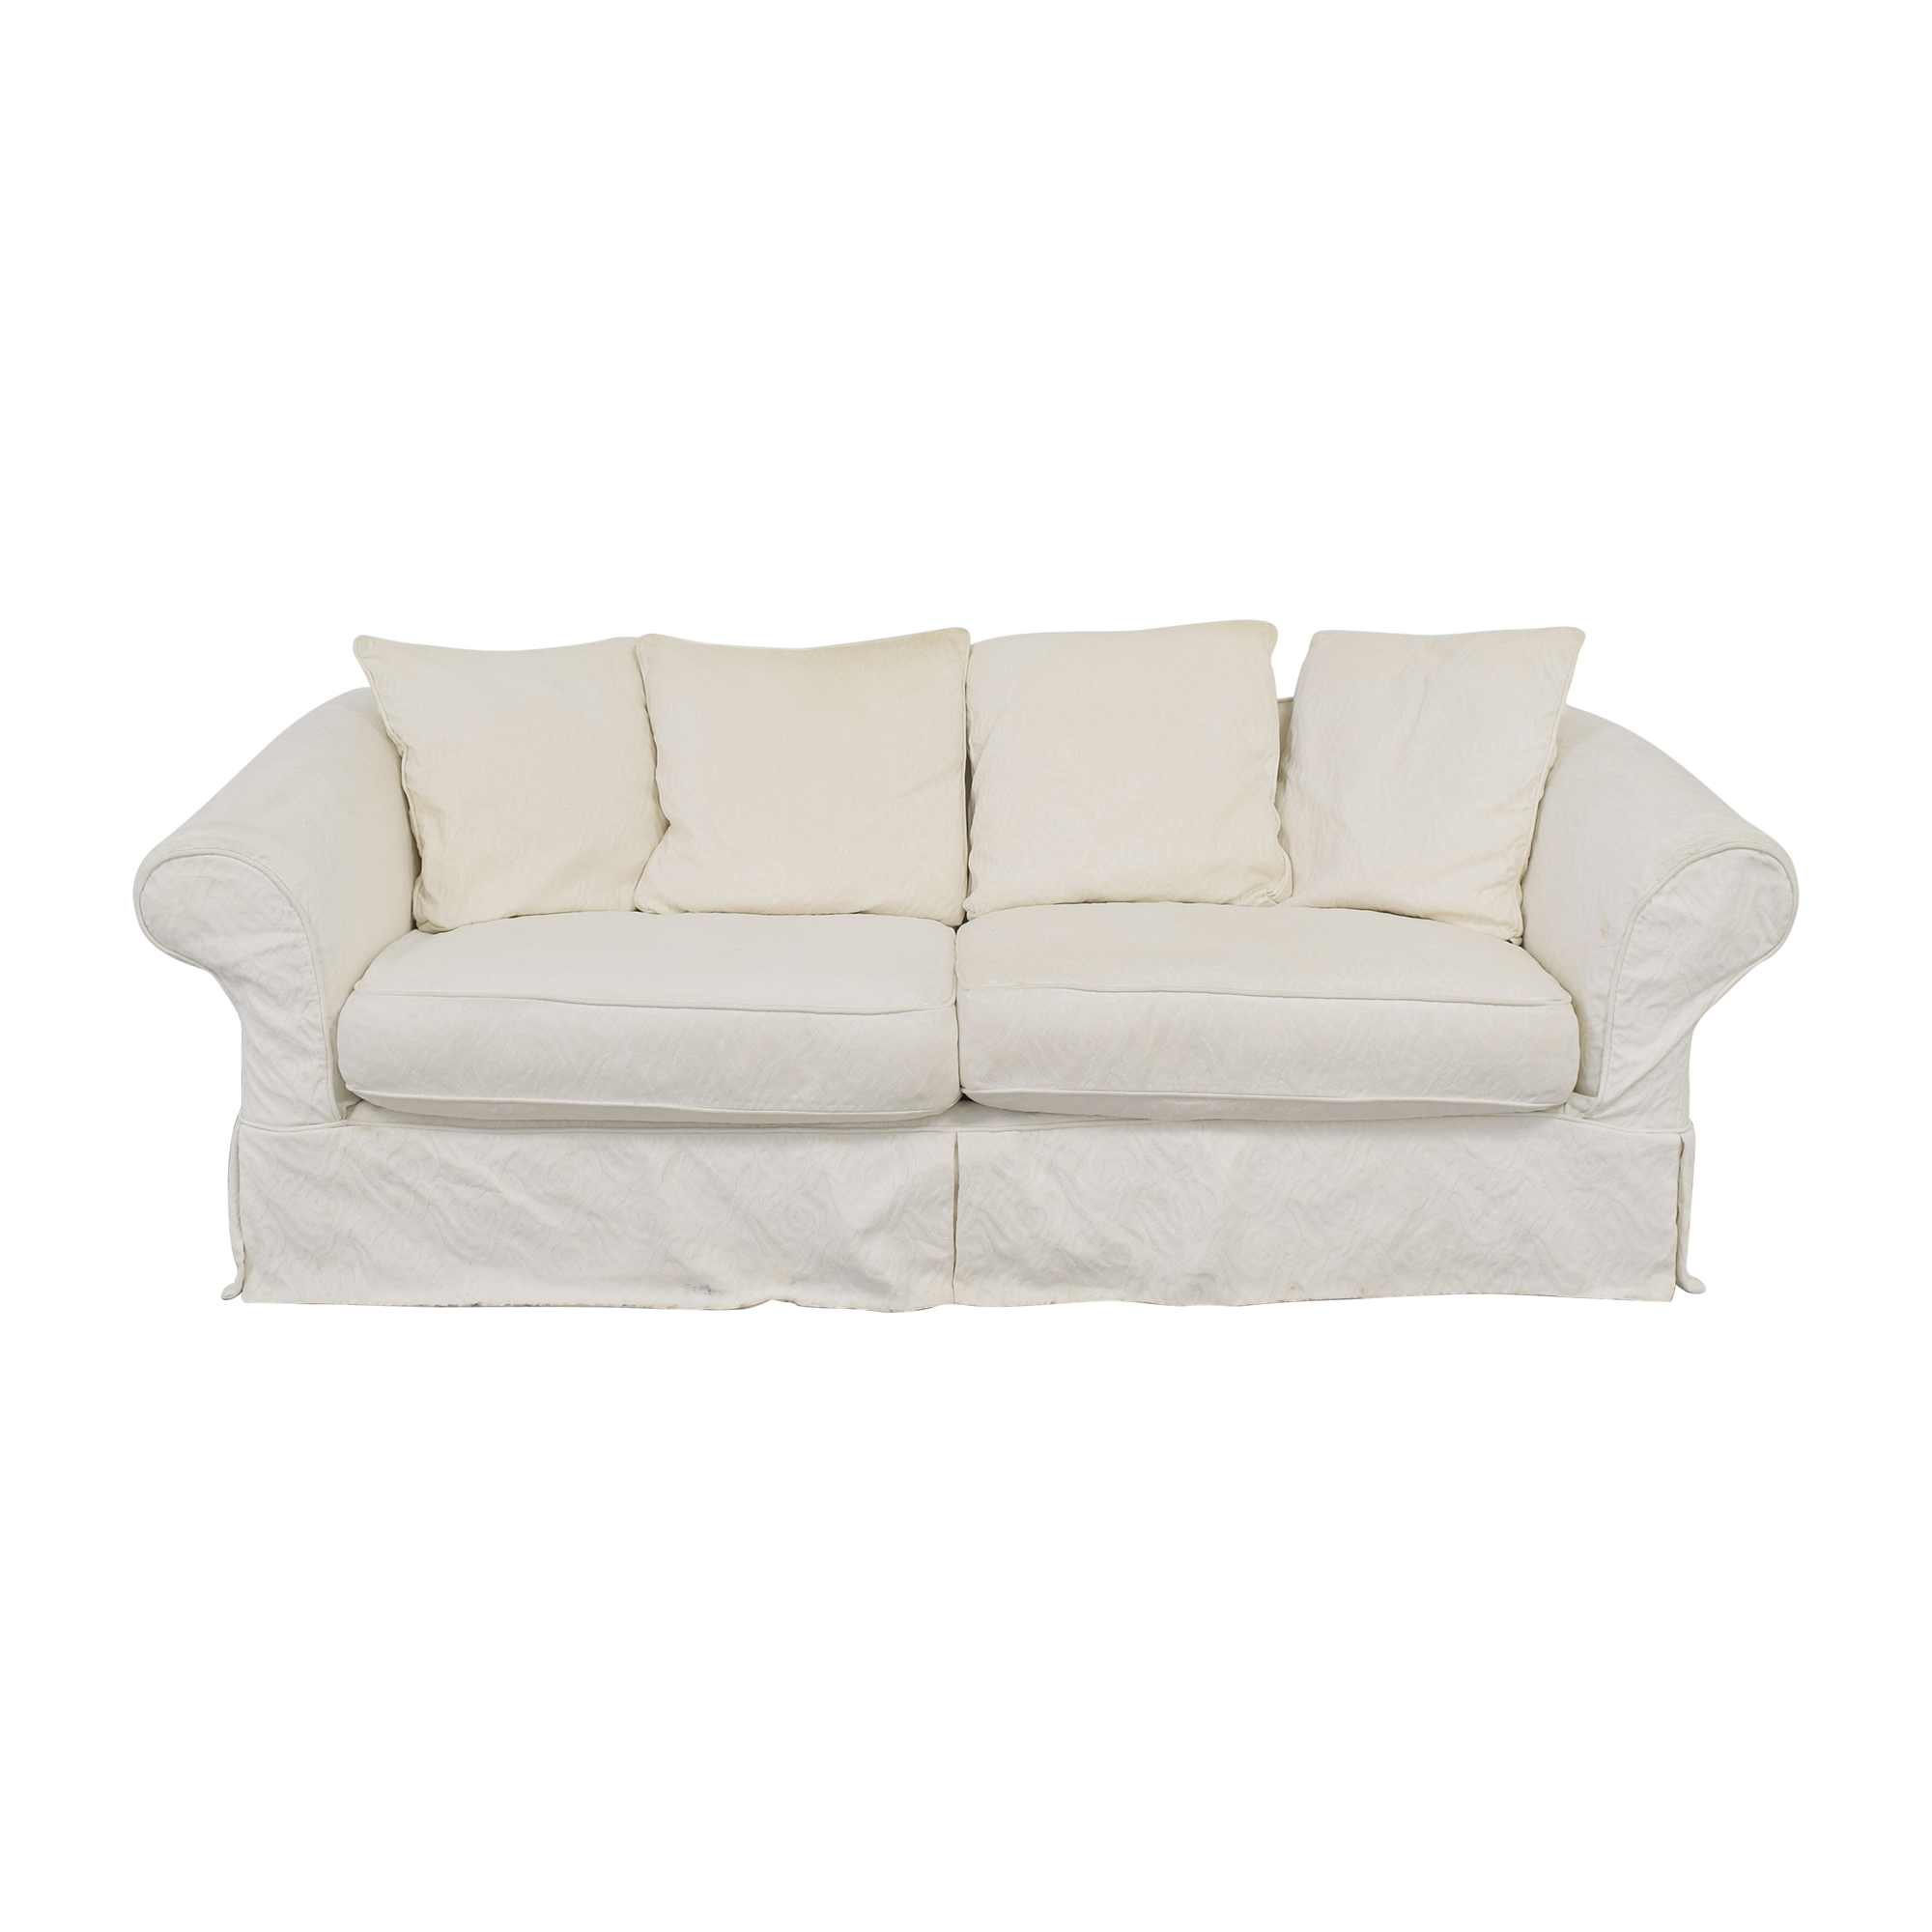 Crate & Barrel Crate & Barrel Slipcovered Couch Sofas